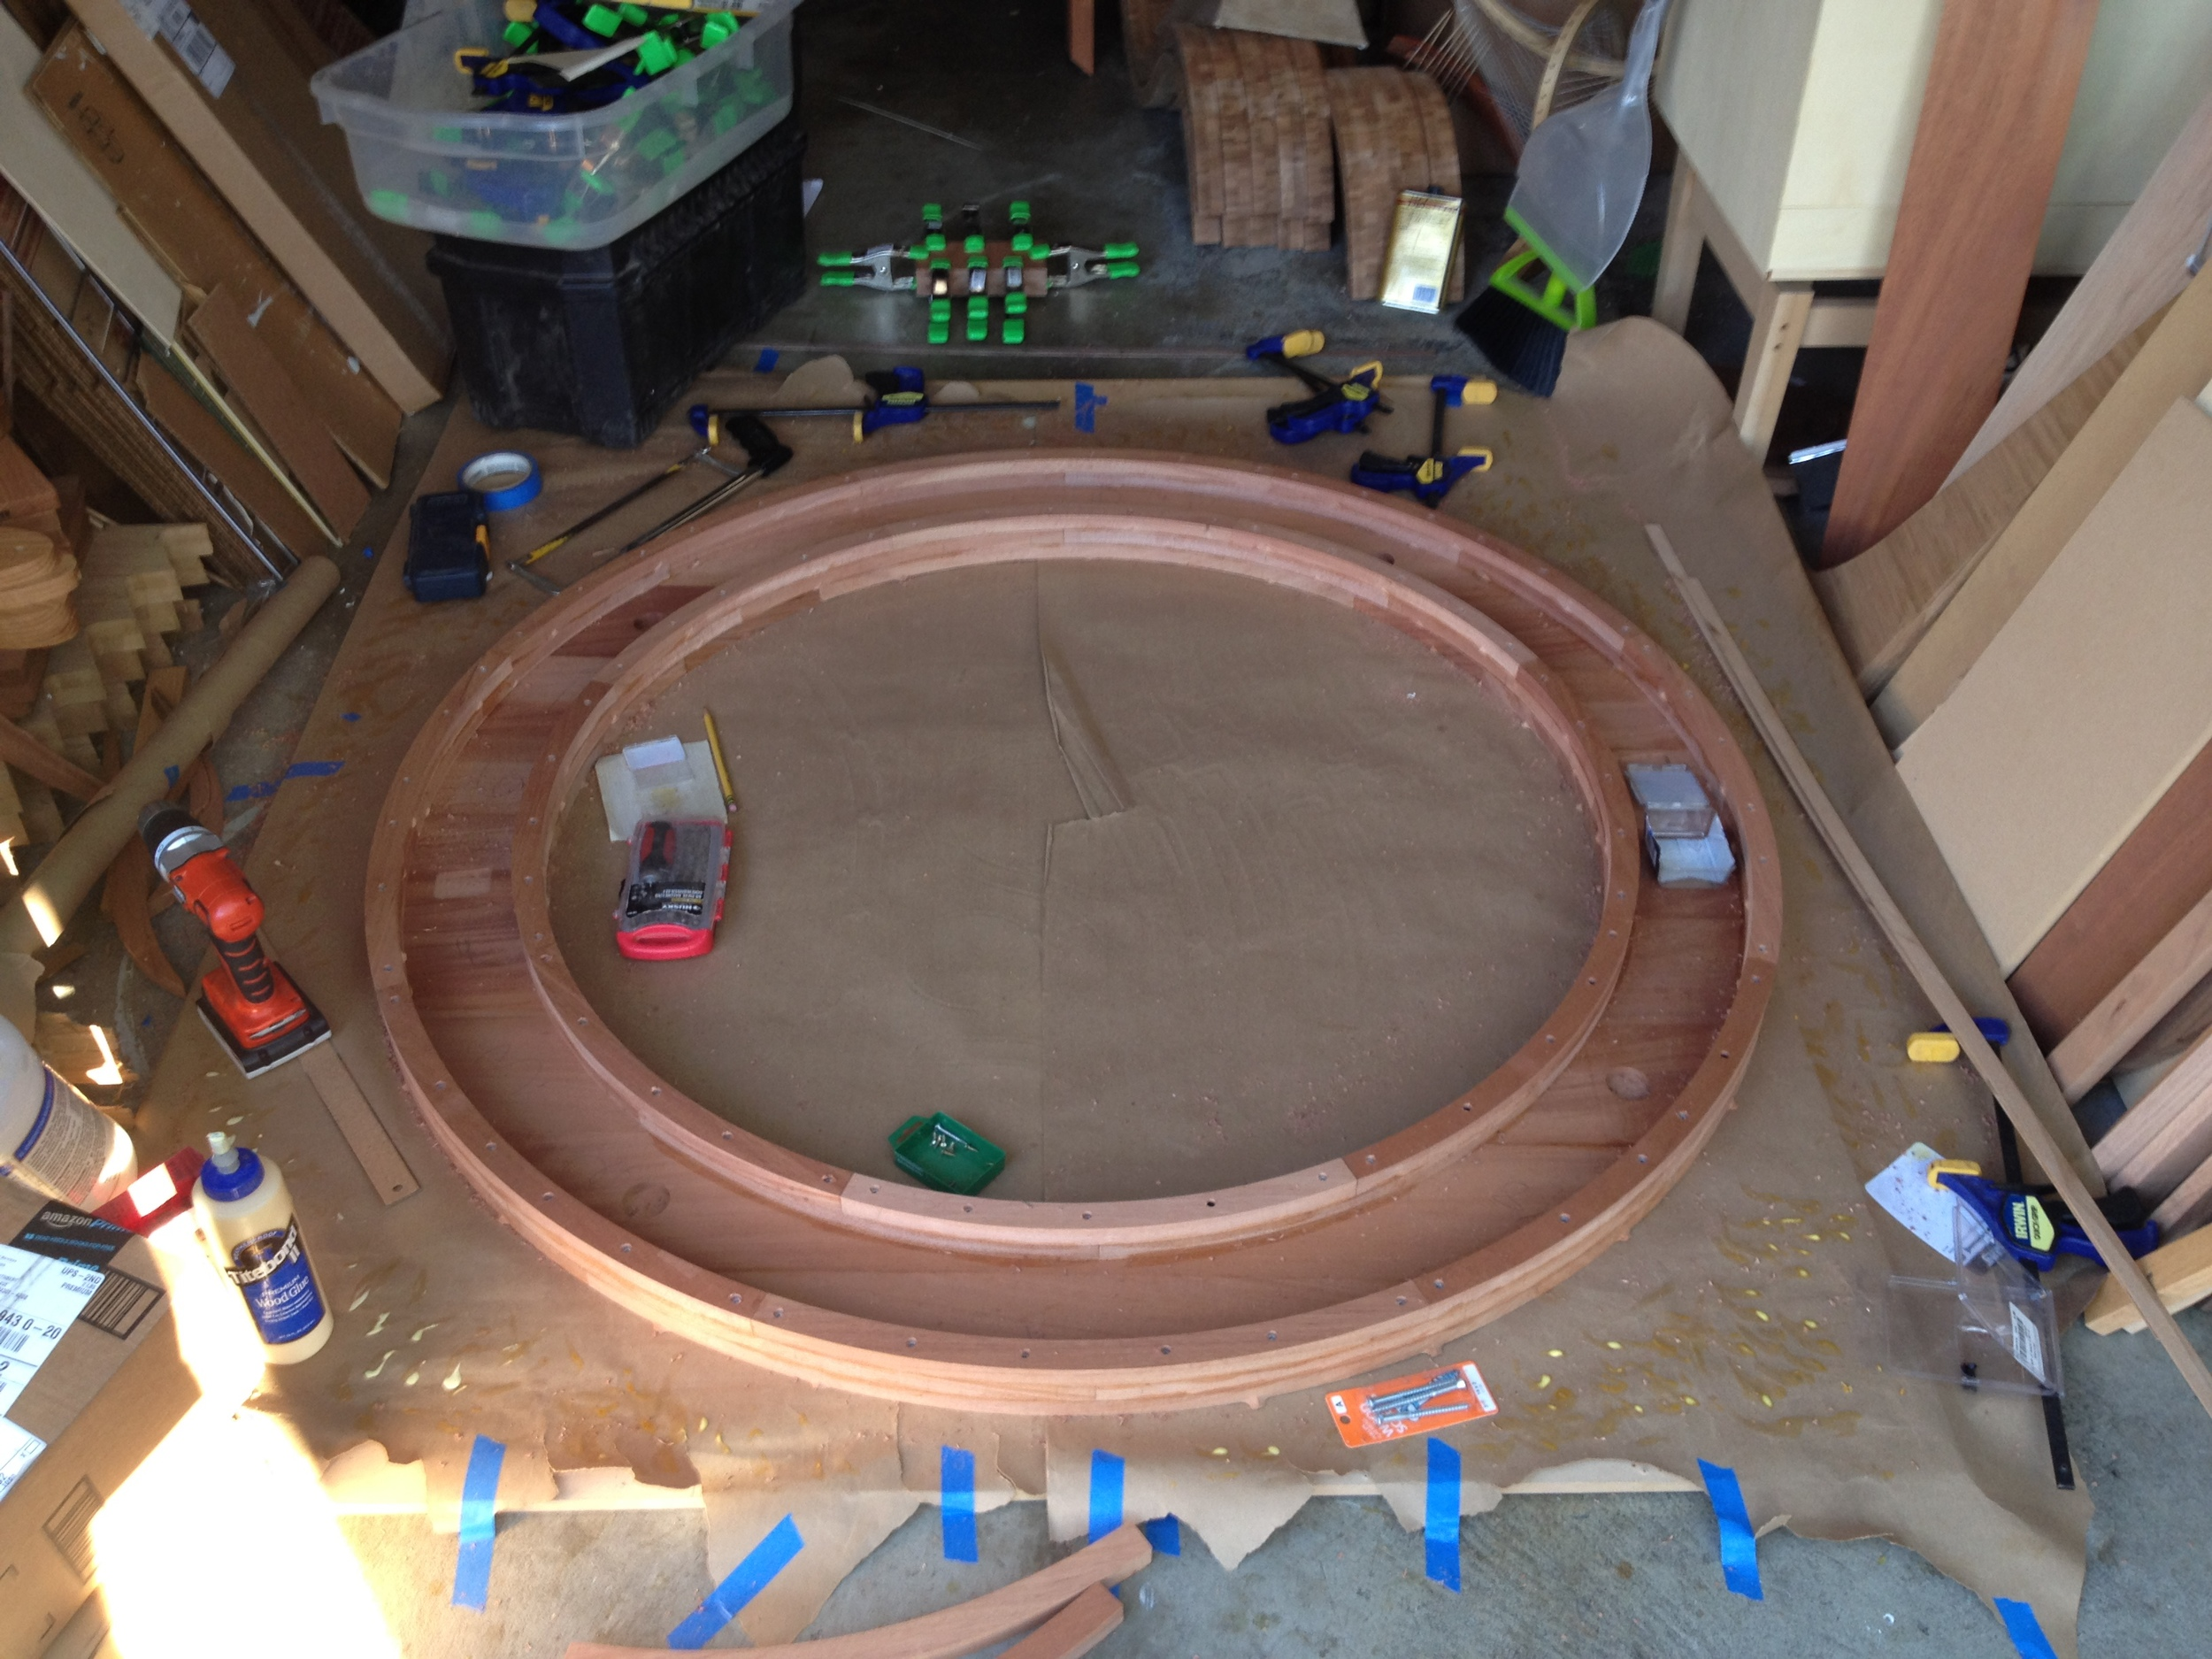 The top three layers of the ring have been assembled, just one more to go. But first...